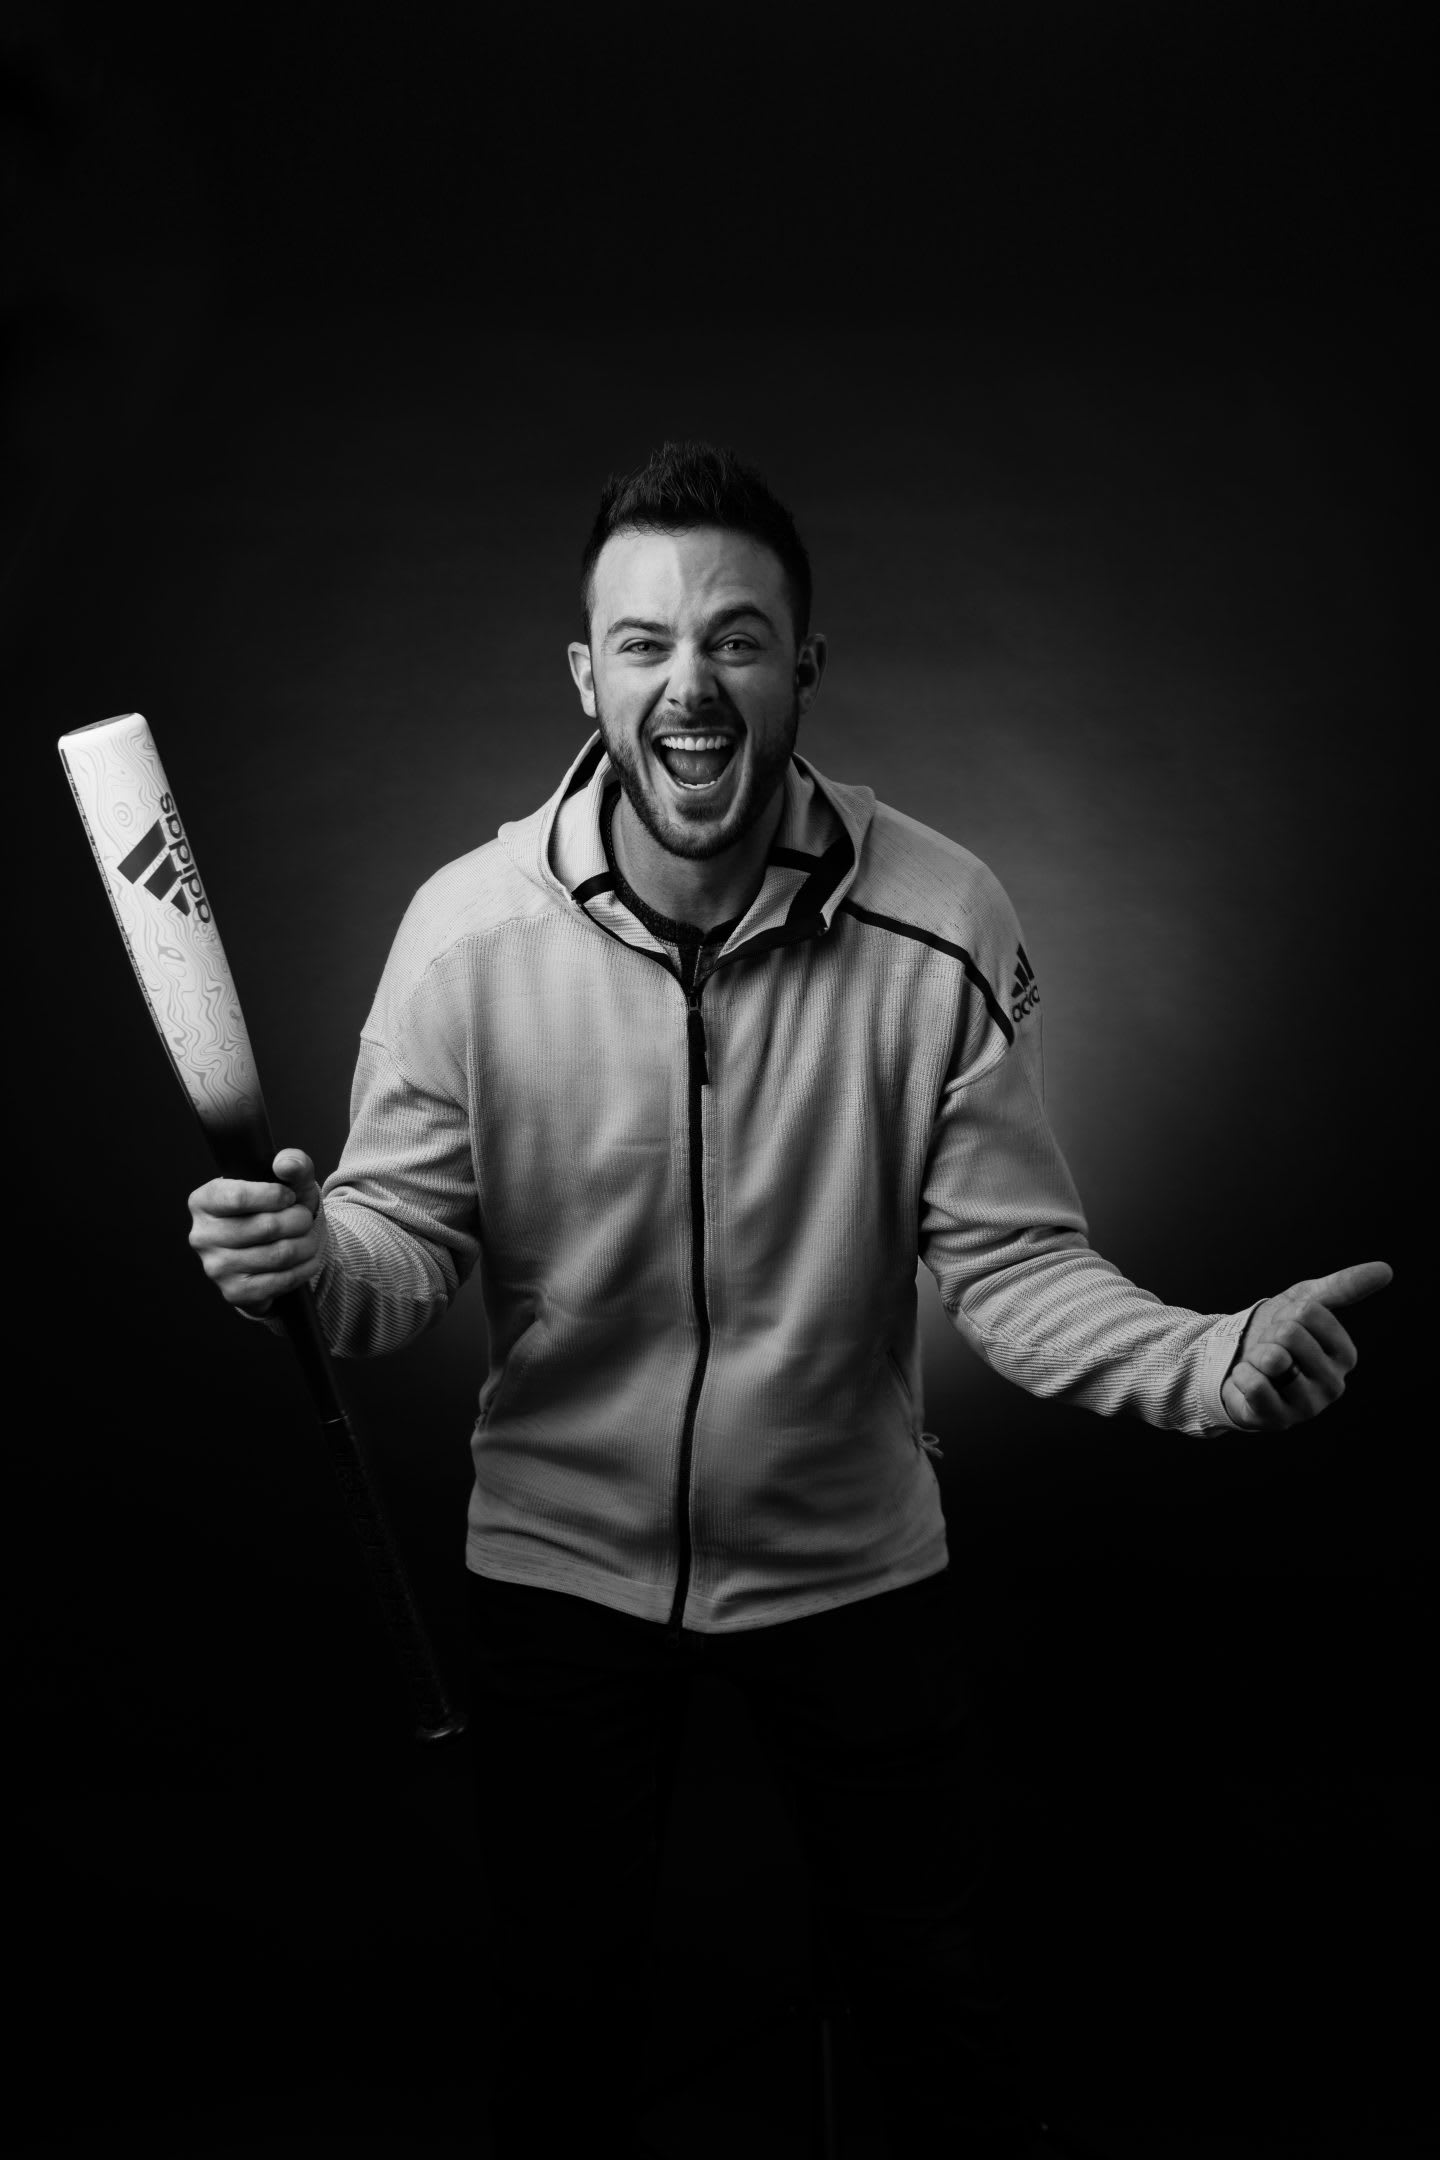 A baseball player grips his baseball bat in the air and roars with a smile. Athlete, baseball, baseball star, motivation, passion.